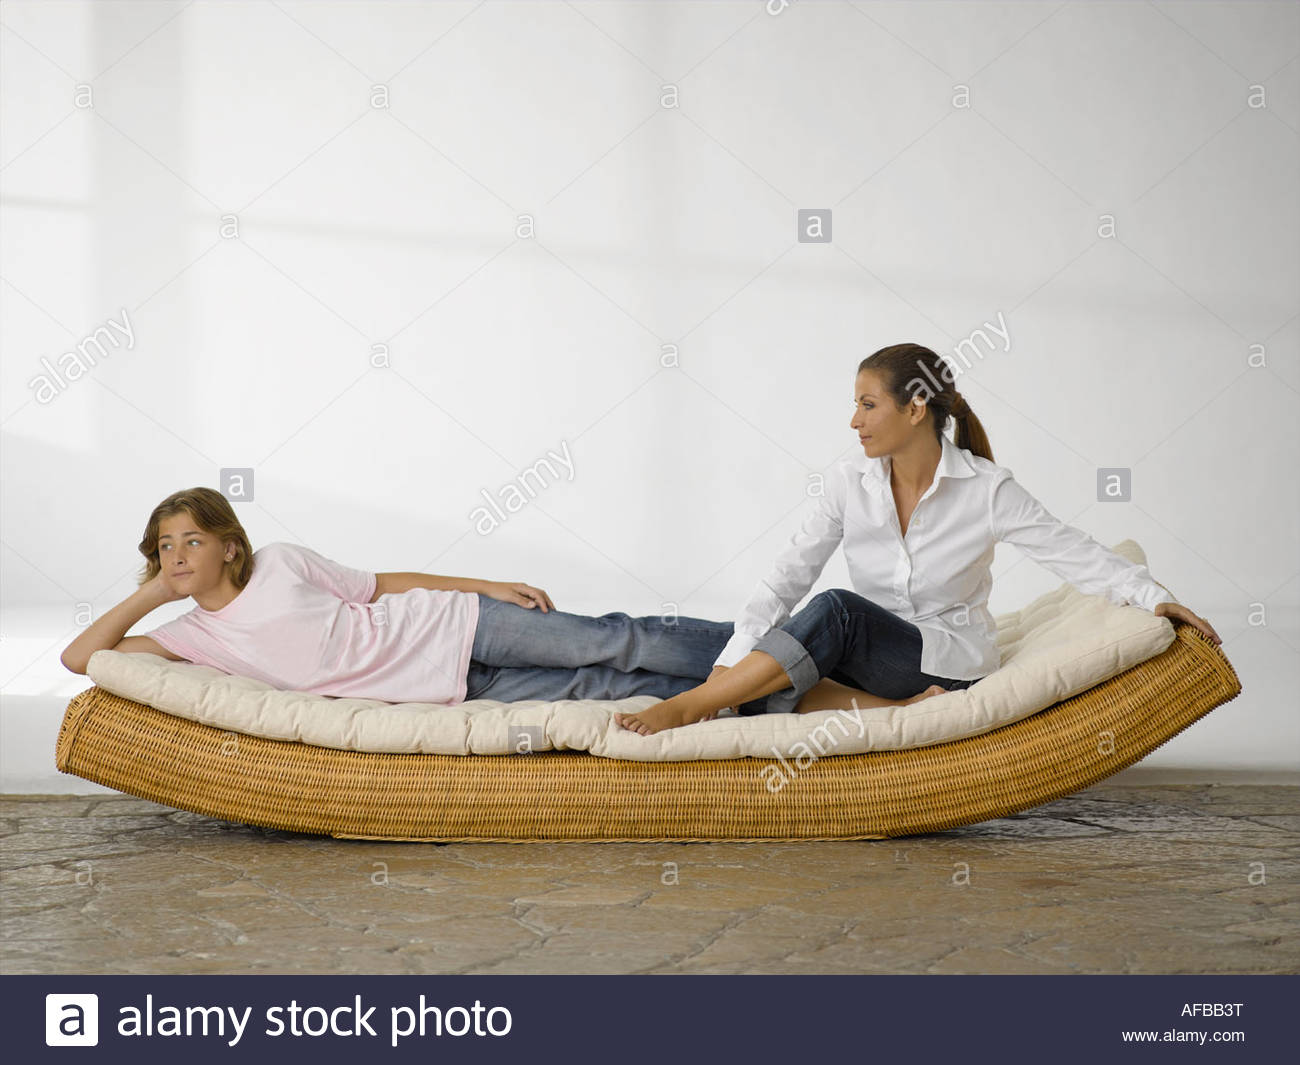 Mid Adult Woman Sitting And Her Son Lying On A Rocking Bed Stock